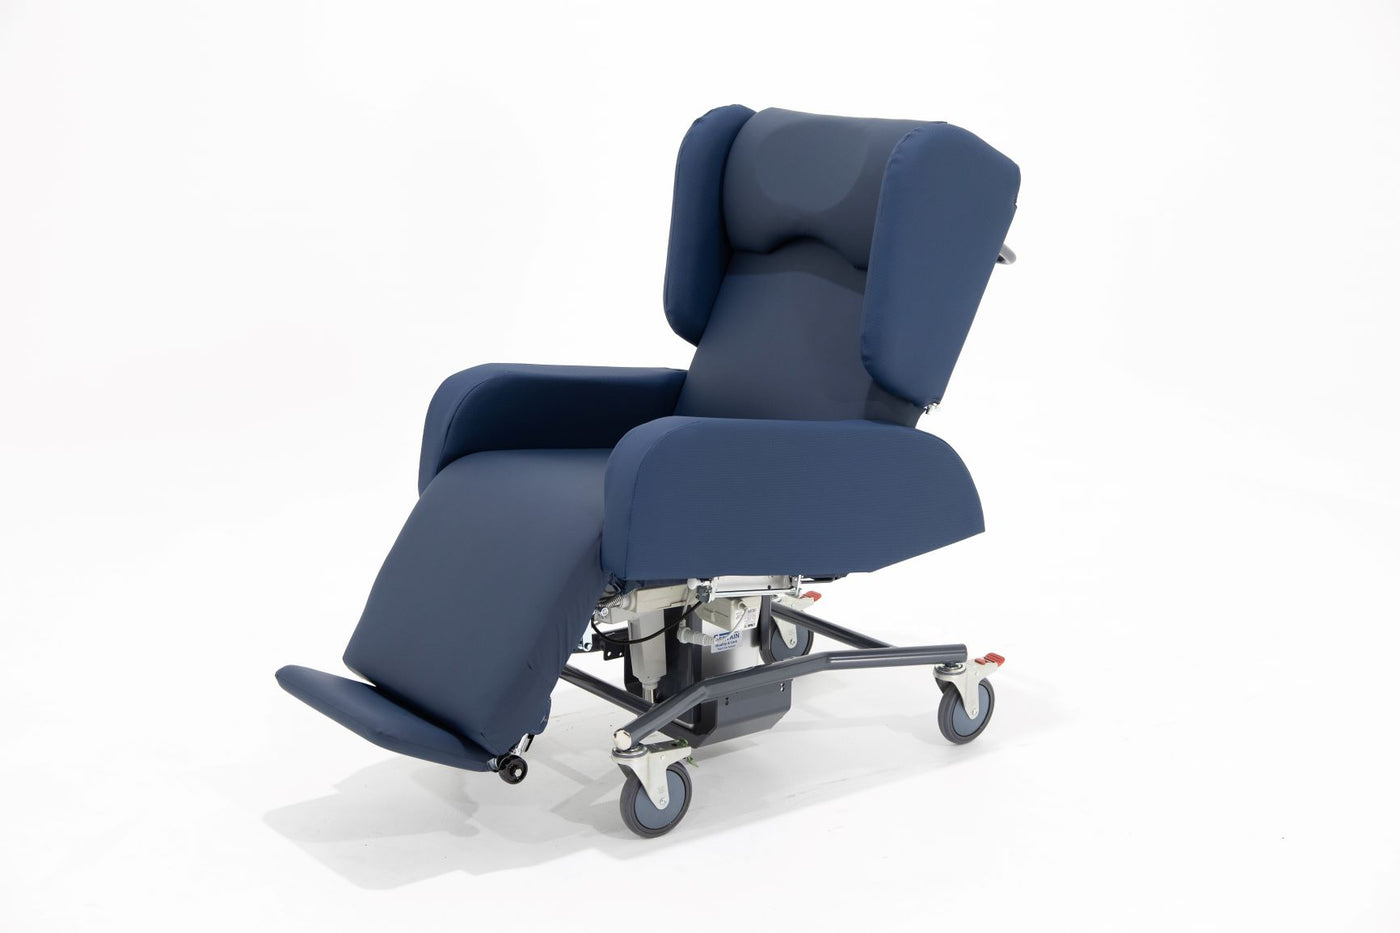 The chair you can be SERTAIN™ of….